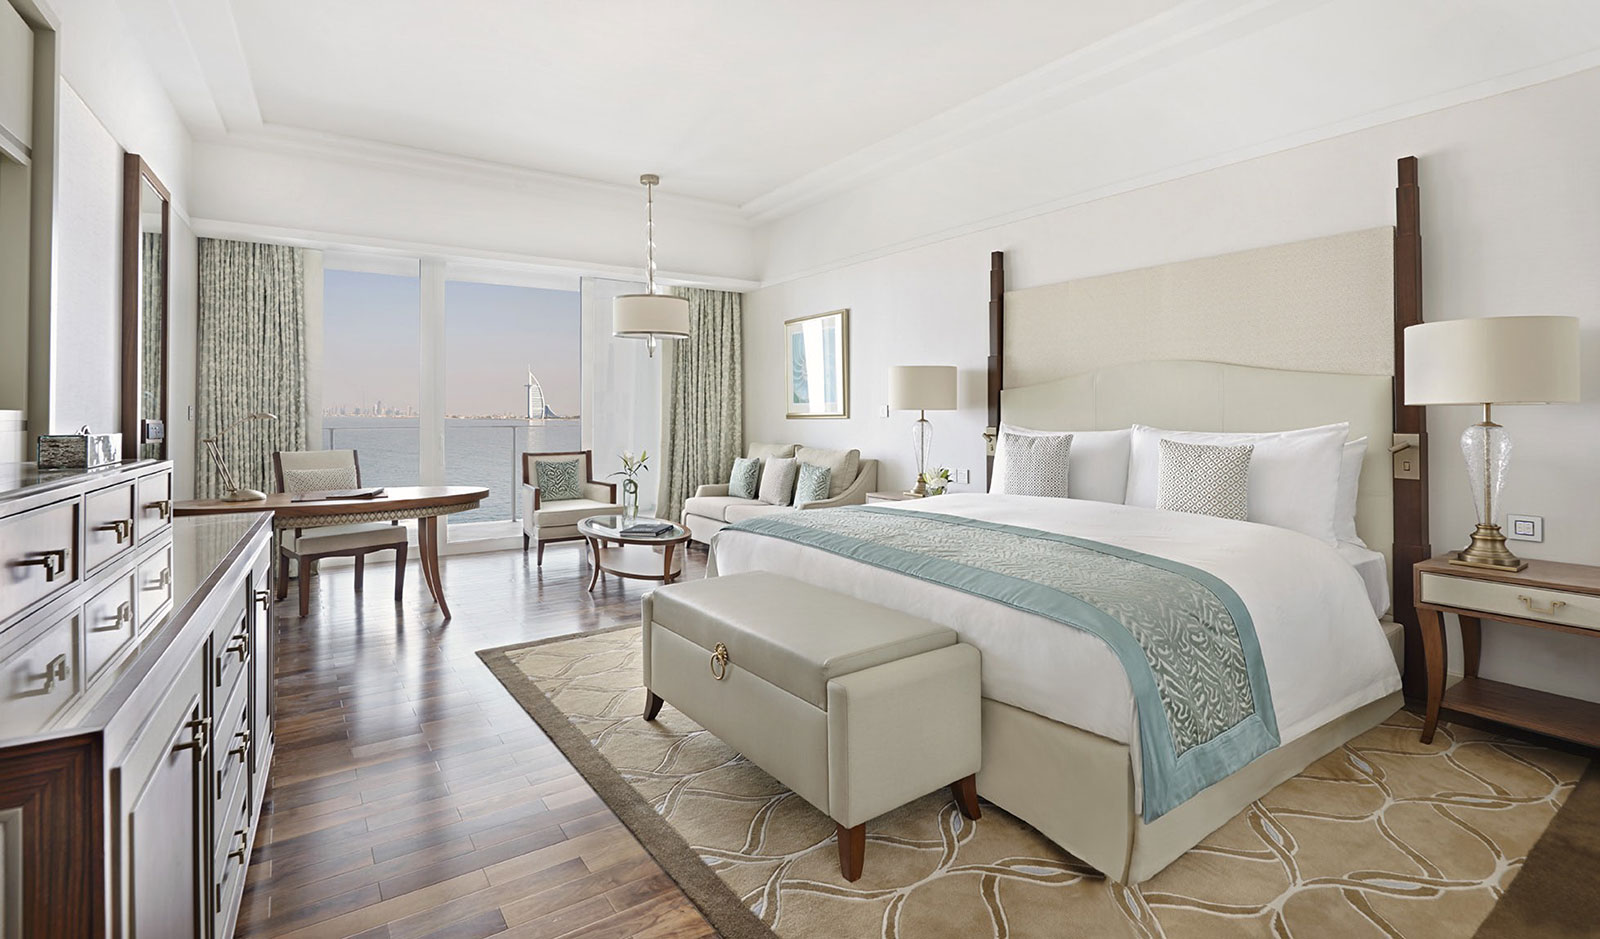 Waldorf astoria hotels resorts opens second hotel in for Best hotels on the palm dubai